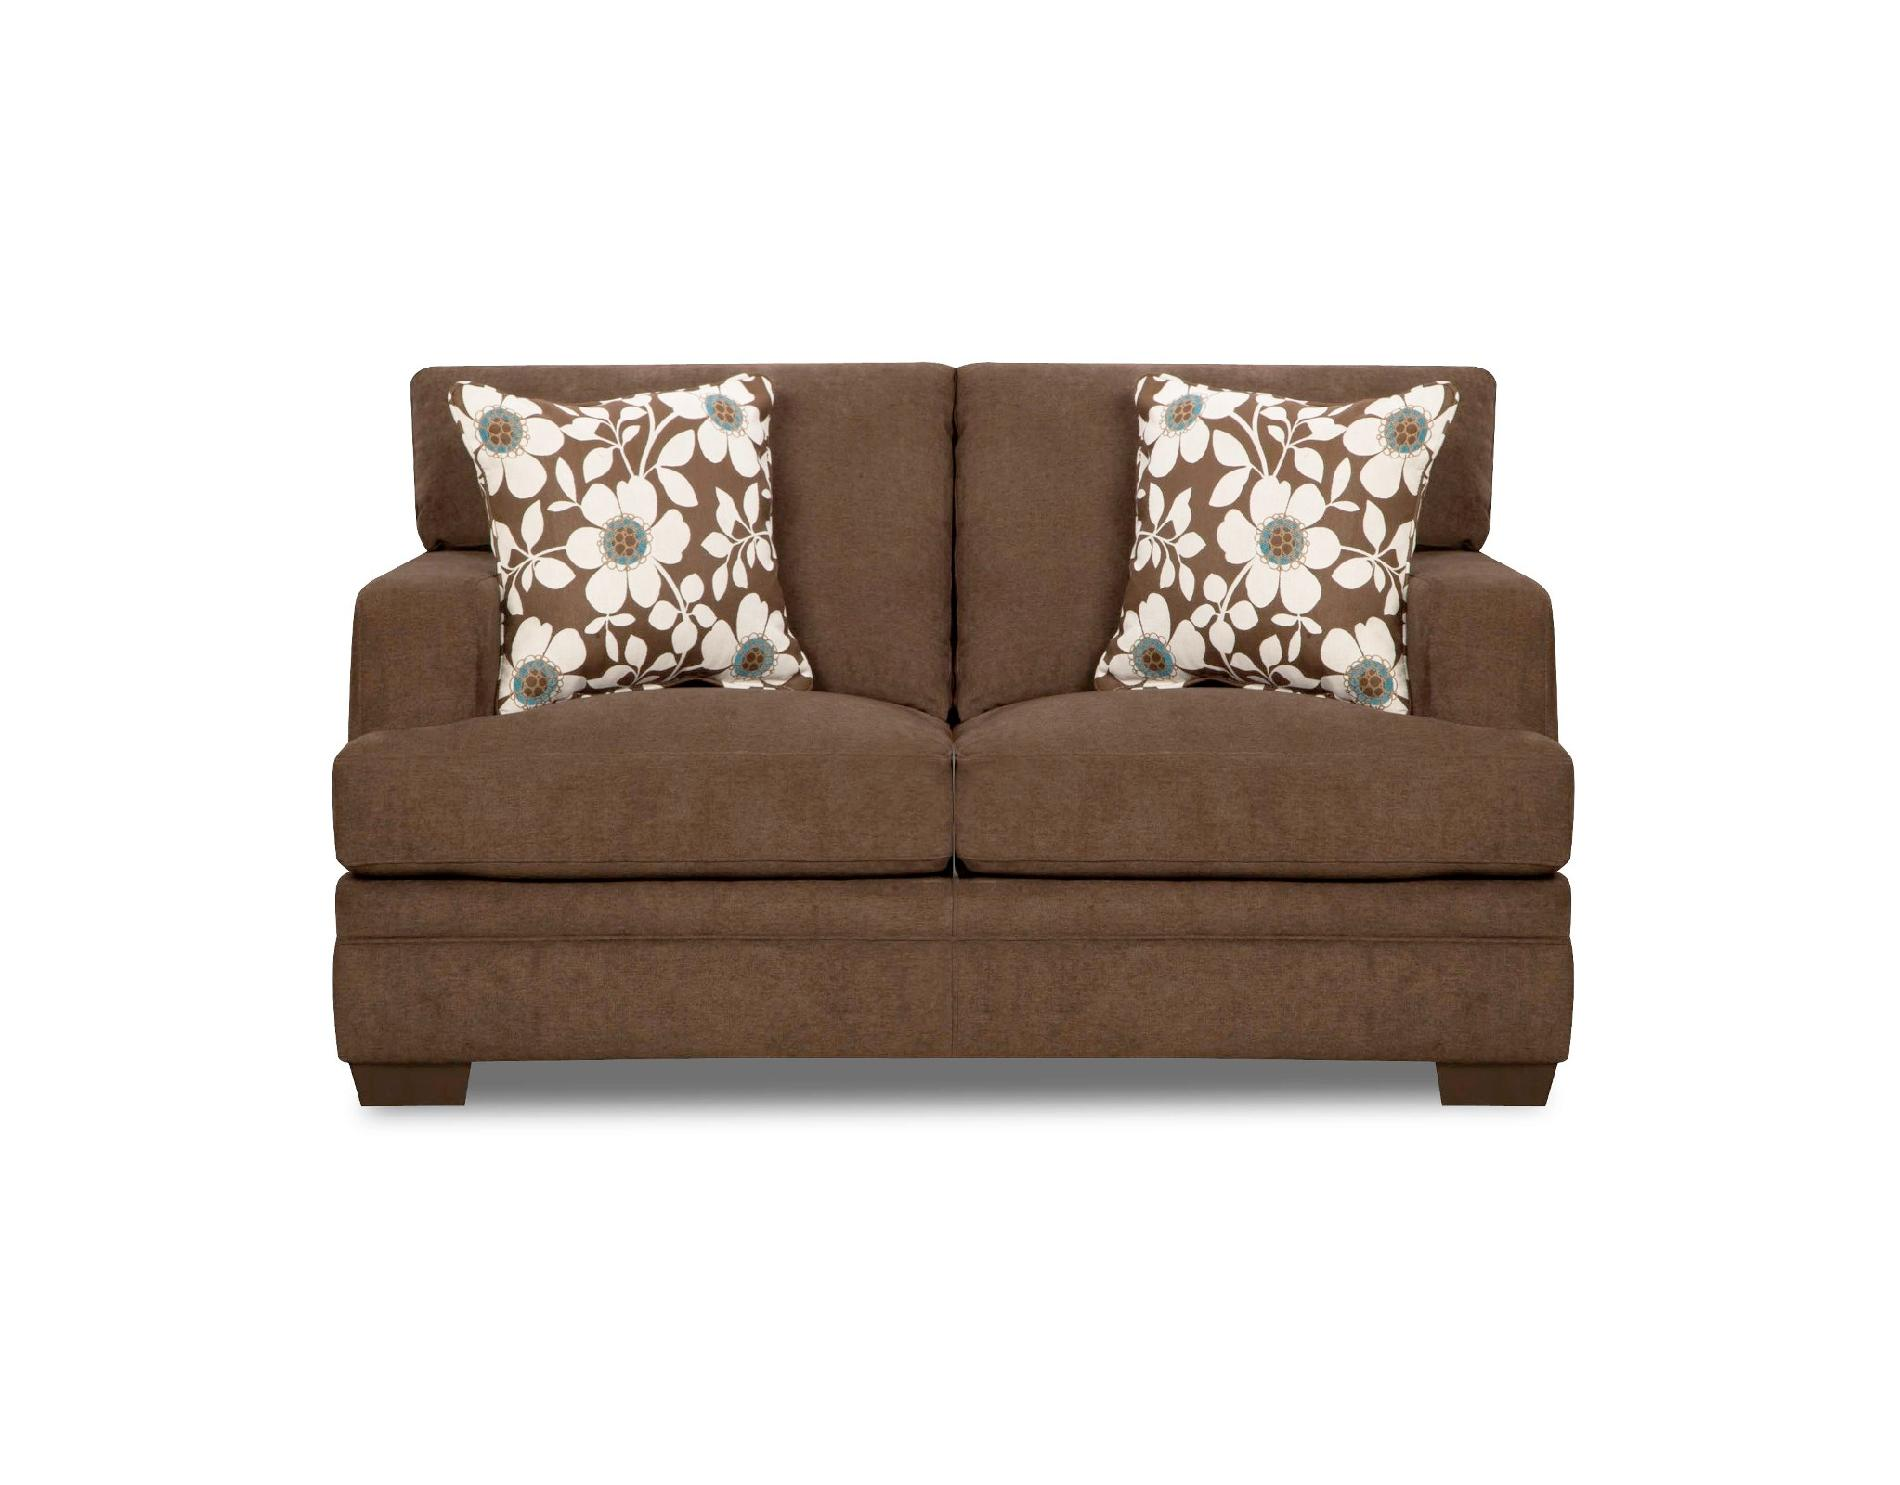 sears twin sleeper sofa how to make an awesome fort simmons upholstery brown chicklet transitional loveseat